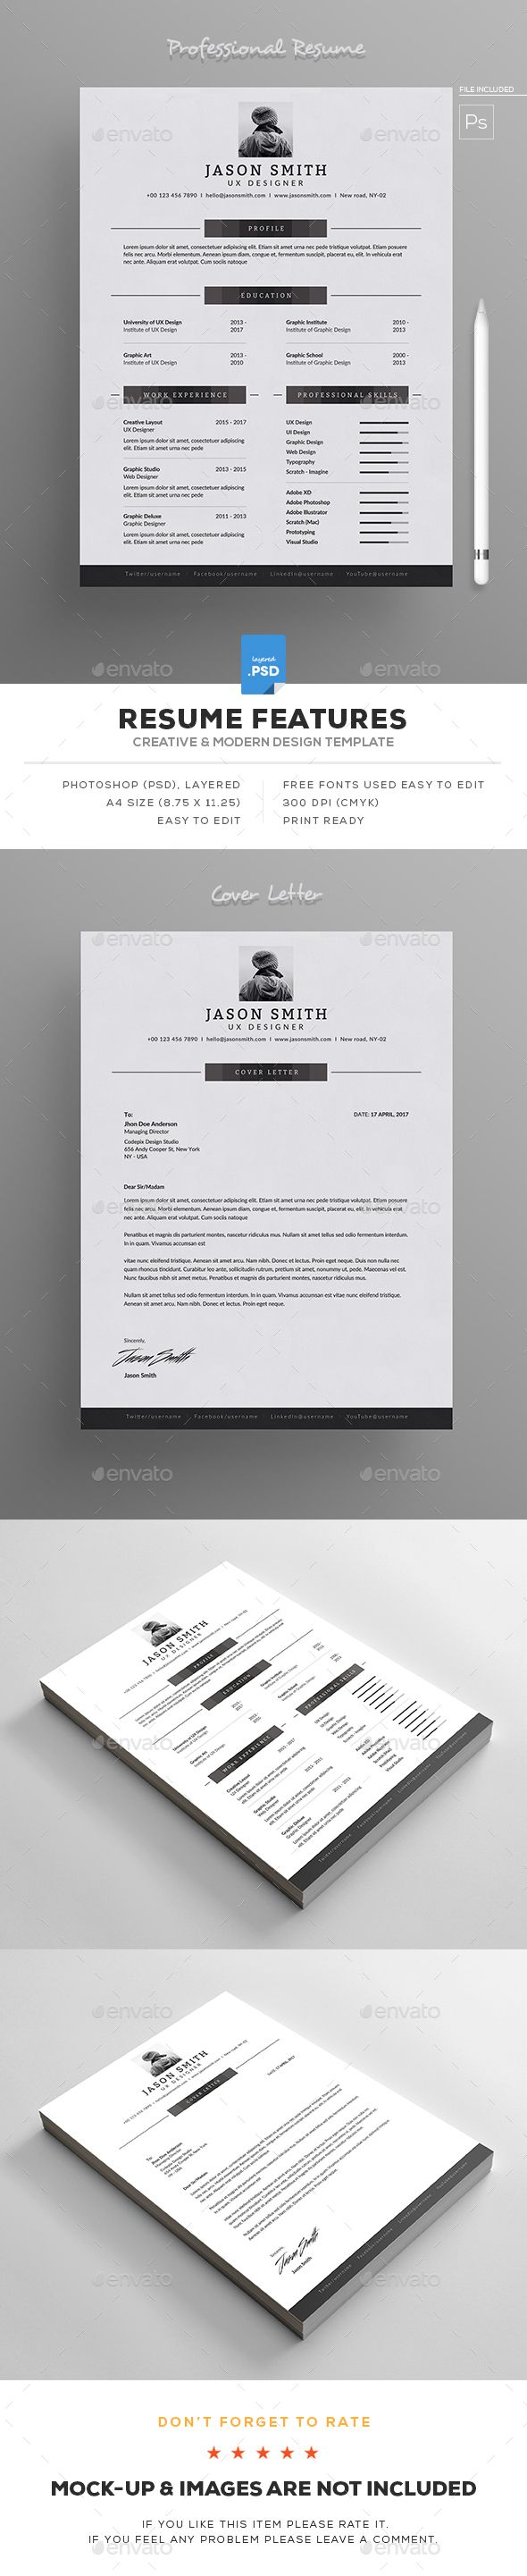 66 Best Resume And Cover Letter Images On Pinterest Resume Ideas